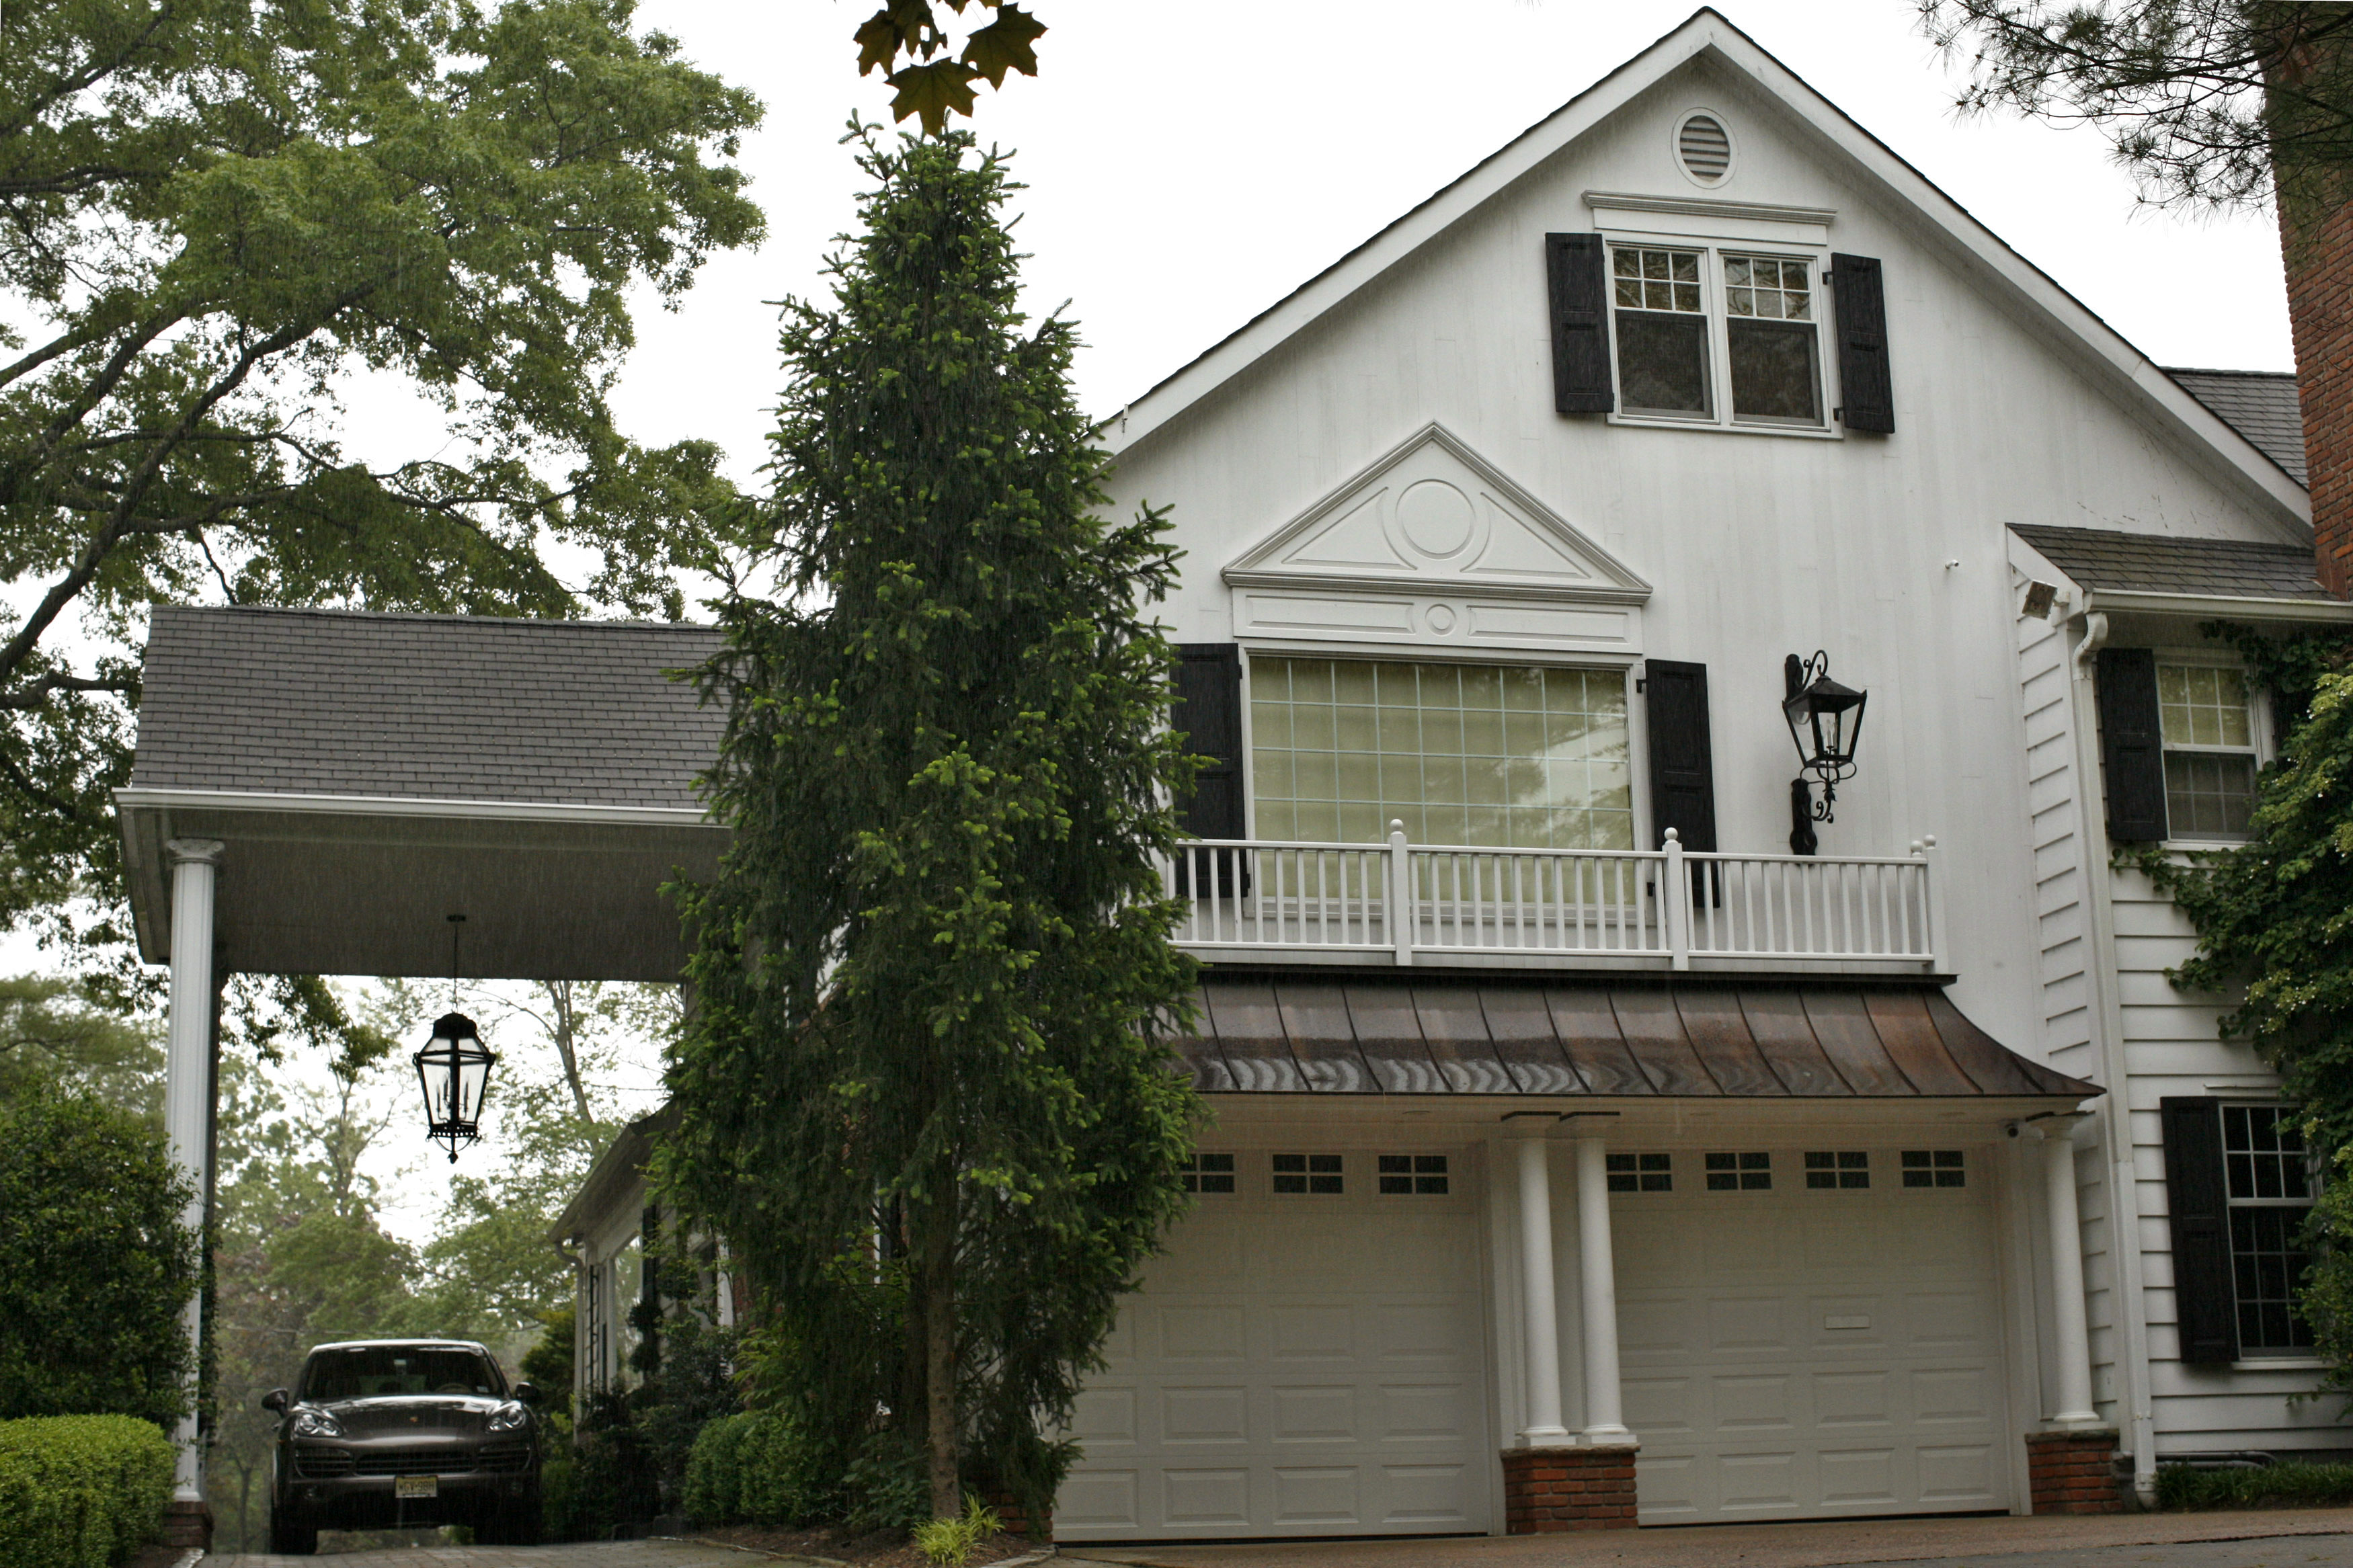 A view of the home of former JP Morgan chief investment officer Ina Drew in Short Hills, New Jersey, on May 14, 2012.